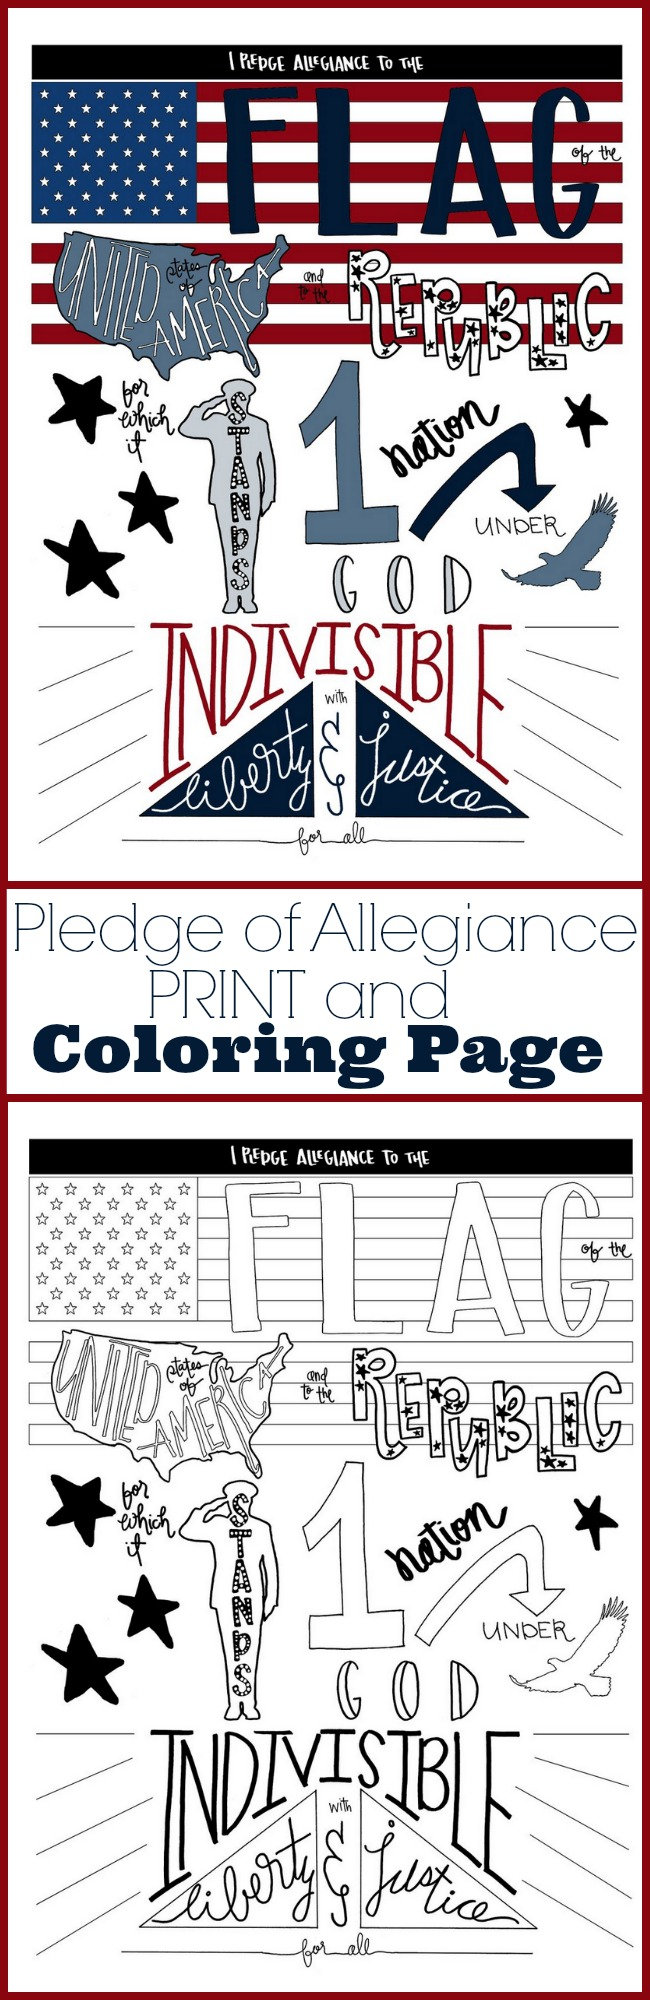 Pledge of Allegiance Print and Coloring page for 4th of July Patriotic craft idea